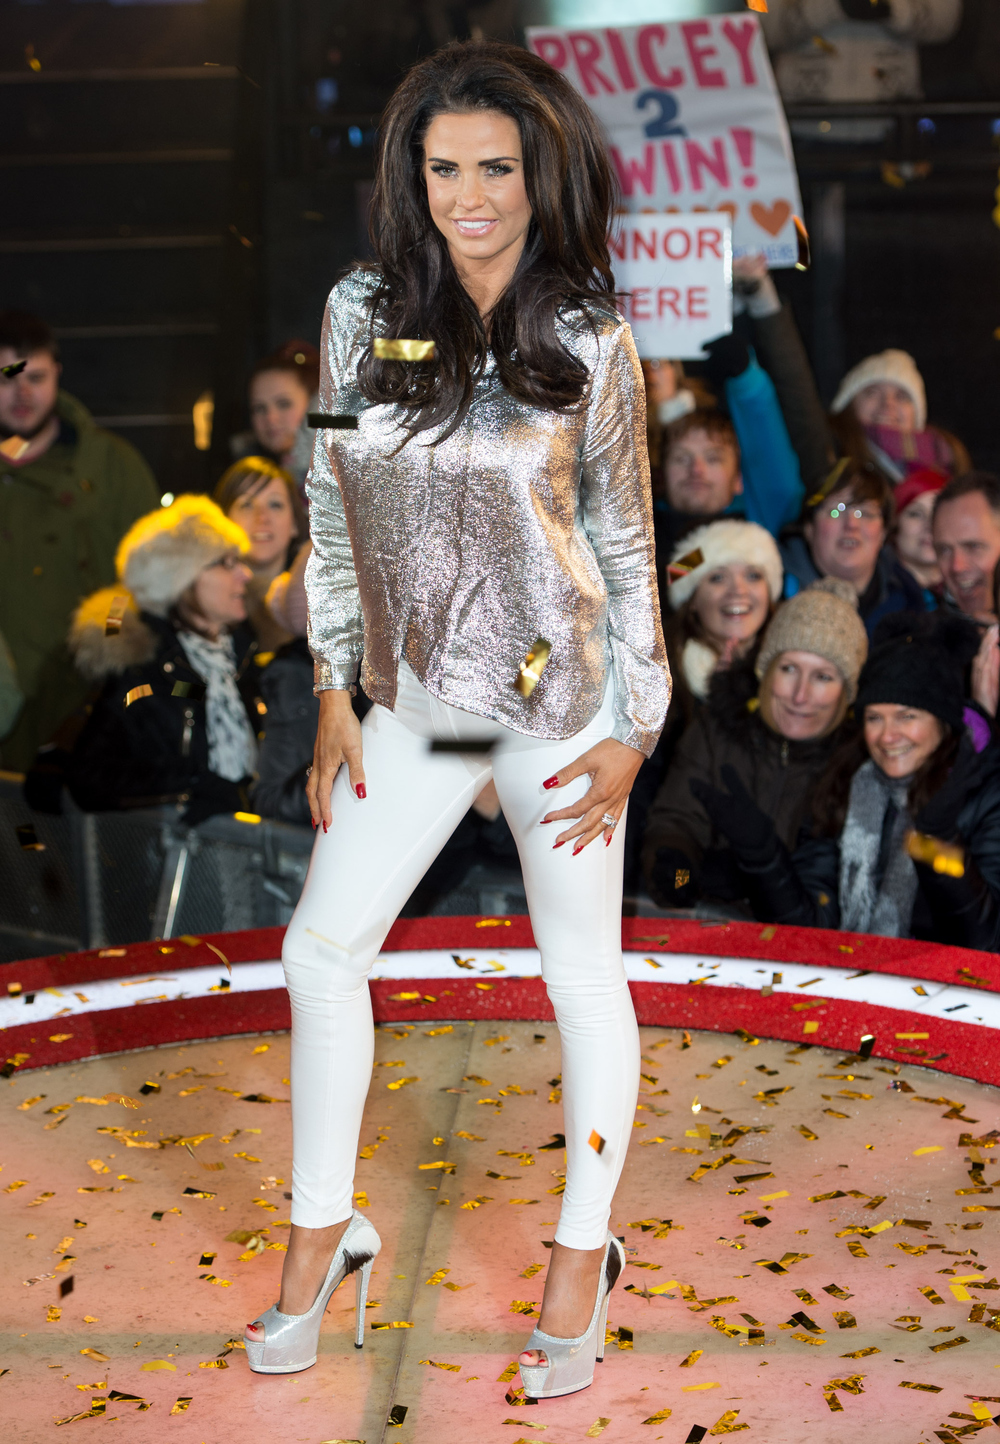 Celebrity Big Brother Series 15: Katie Price Wins!